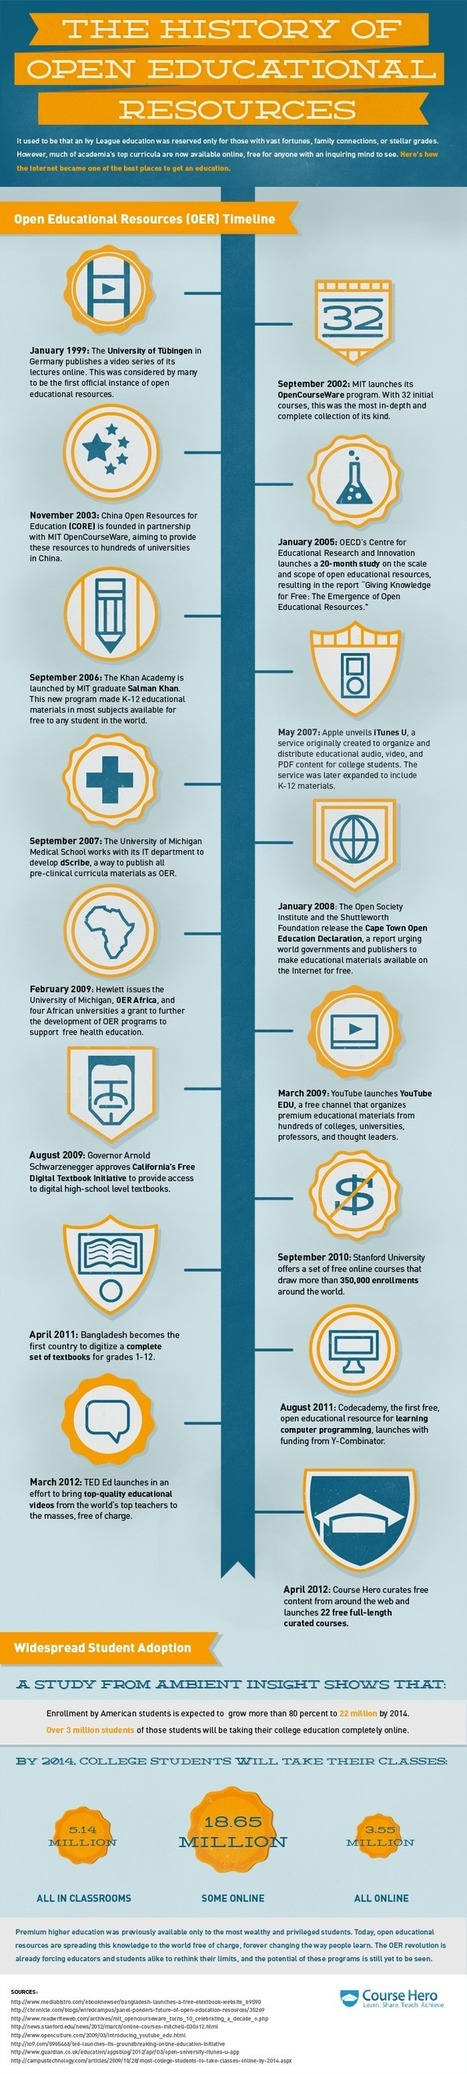 The History of Open Educational Resources Infographic - e-Learning Infographics | Tools for Creating Blended Learning Environments | Scoop.it